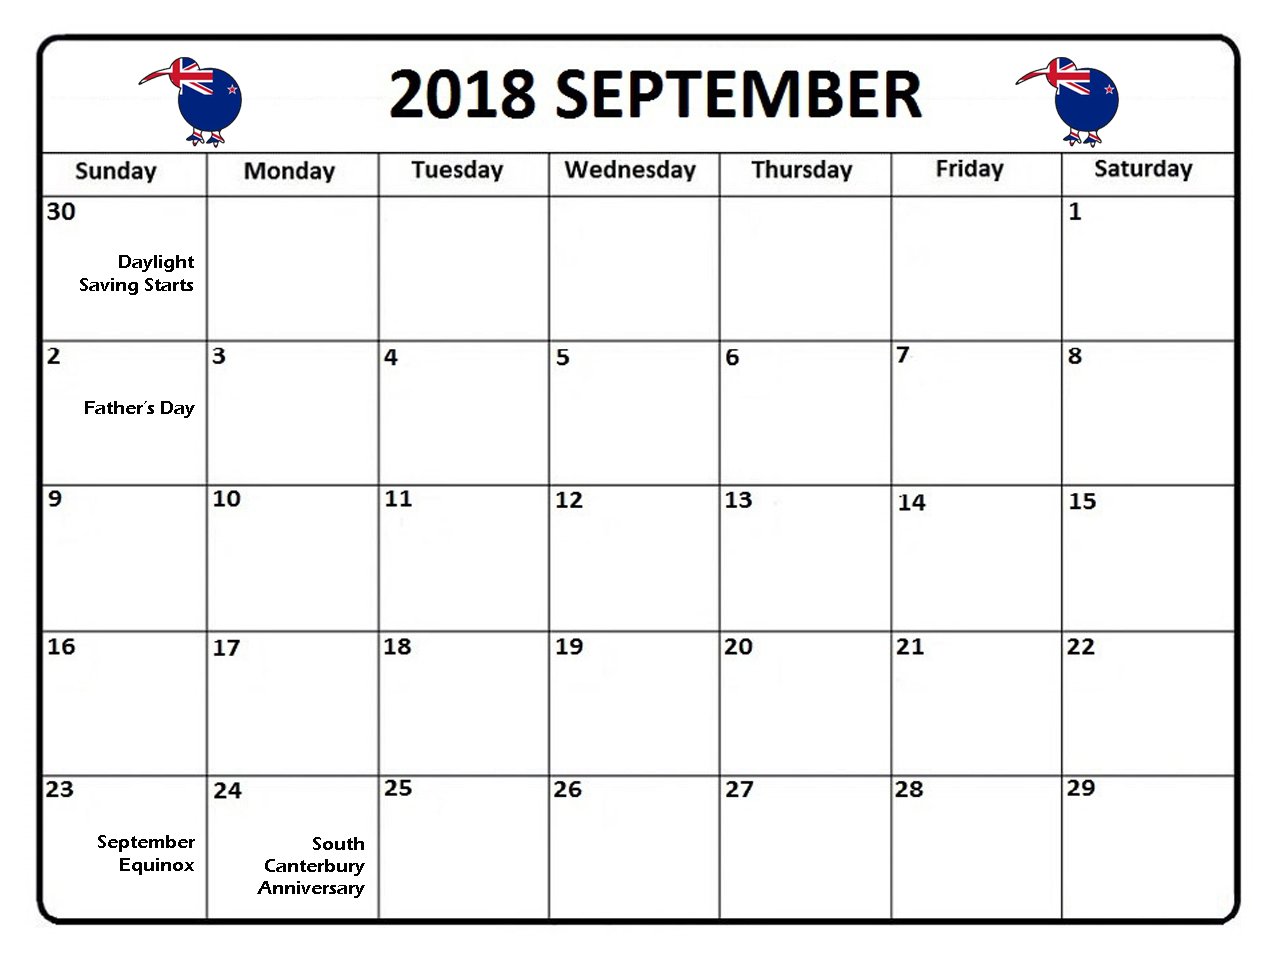 September 2018 Calendar New Zealand With Holidays